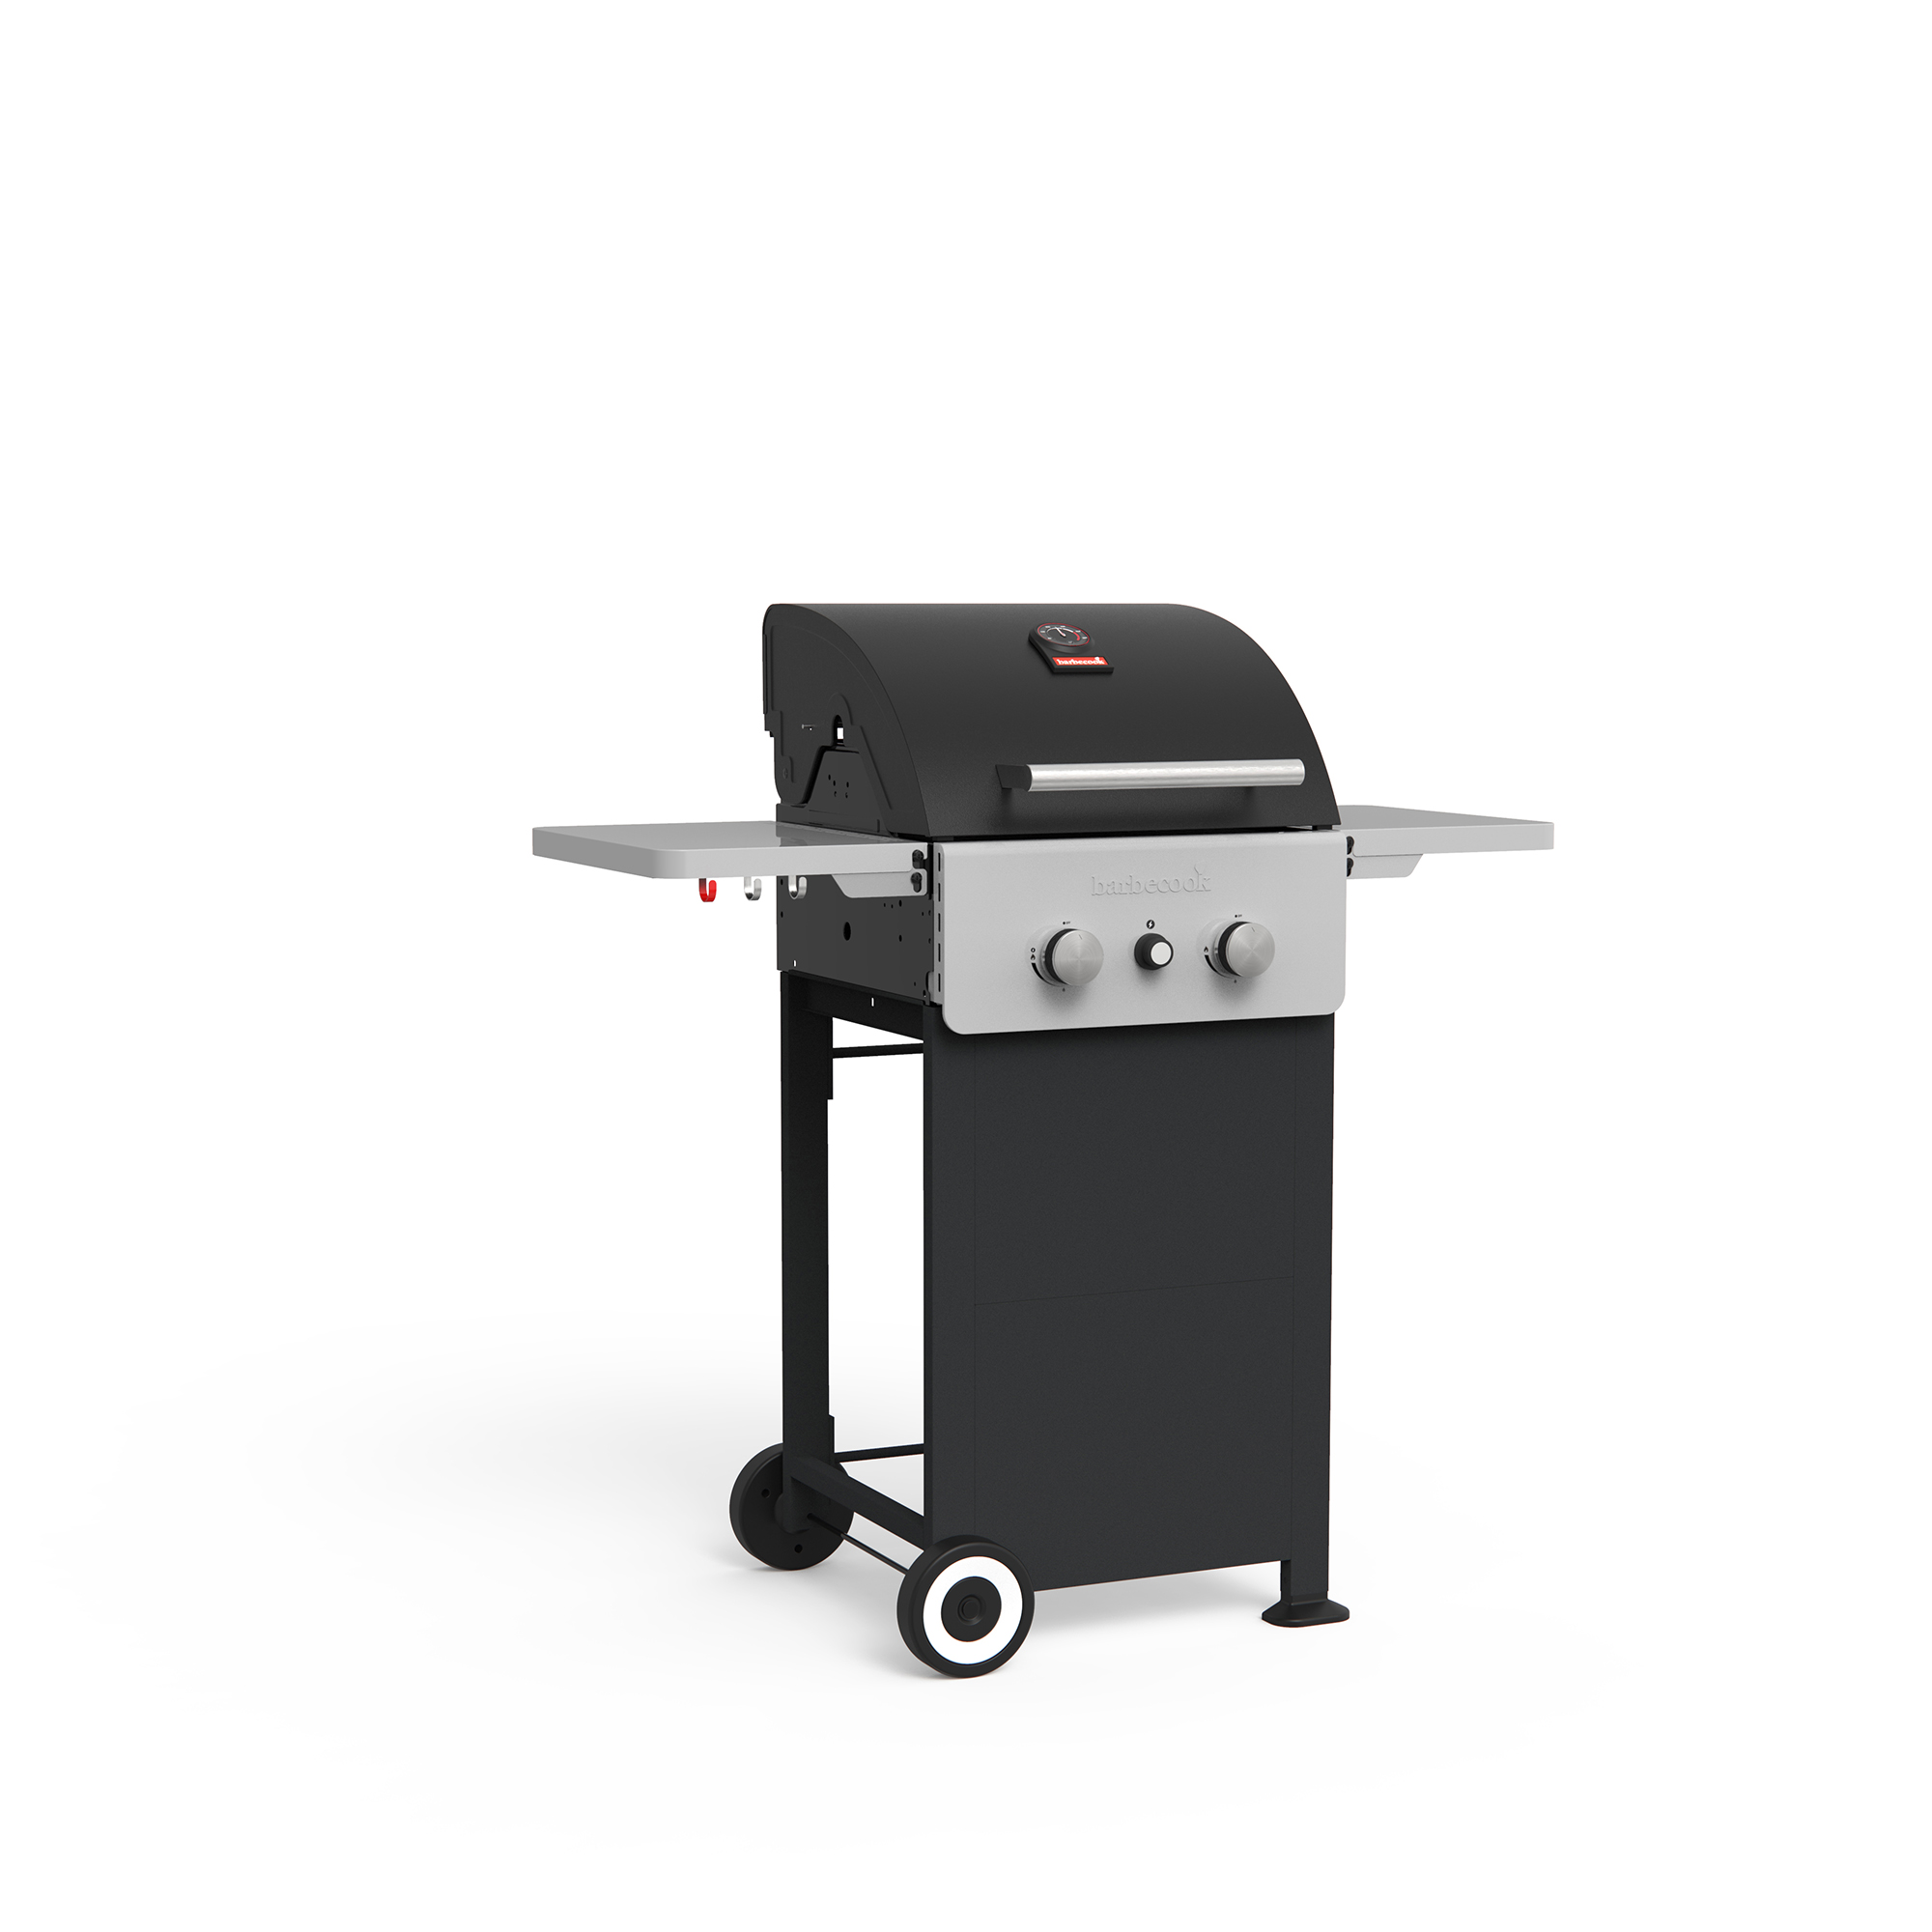 Barbecook Spring 2002 gas barbecue 110x55x115cm